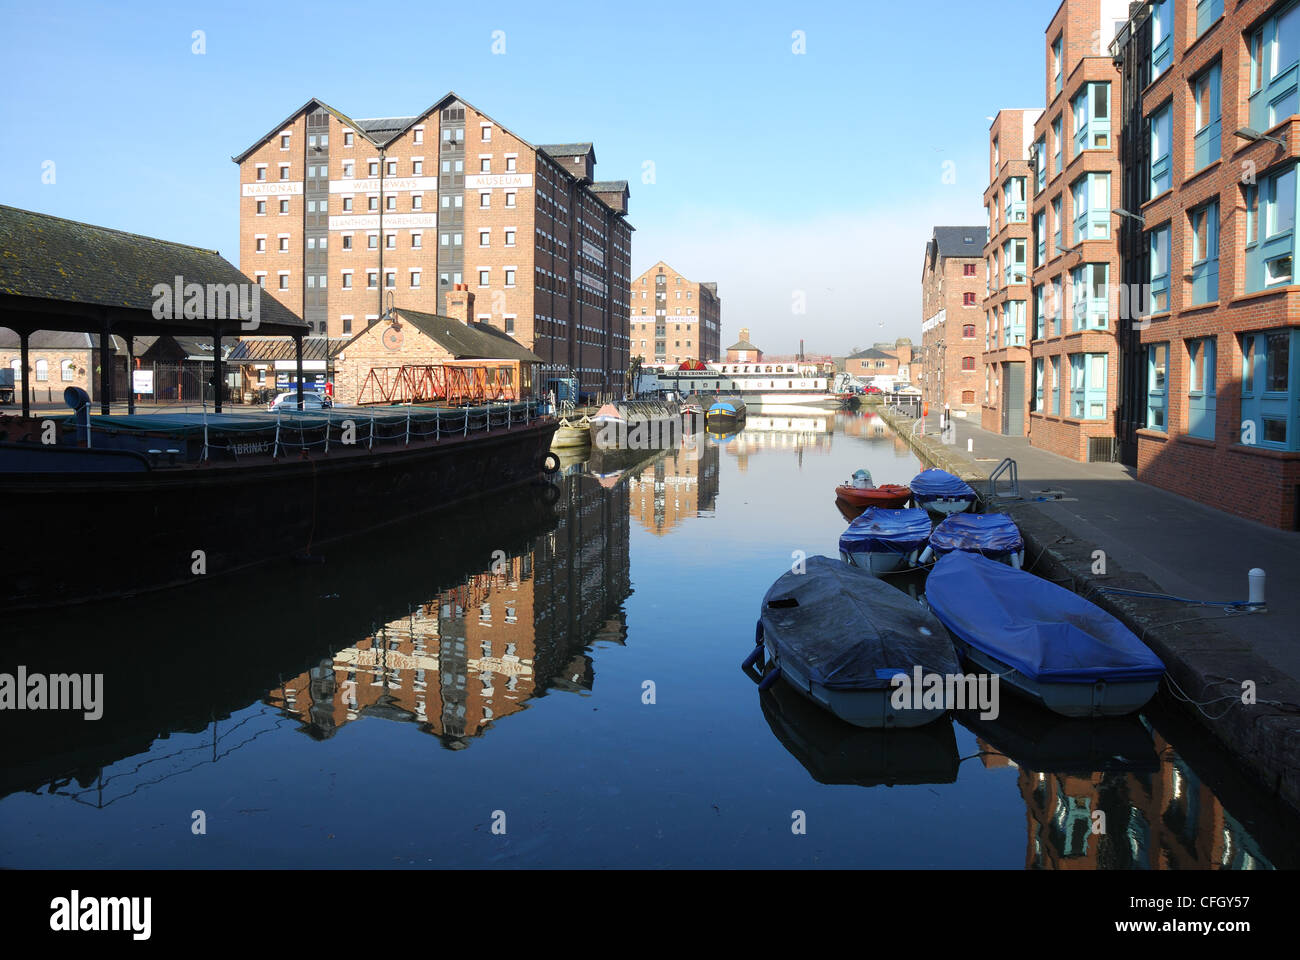 Barge Arm at Gloucester Docks, UK, showing grain warehouse converted to the National Waterways Museum. - Stock Image